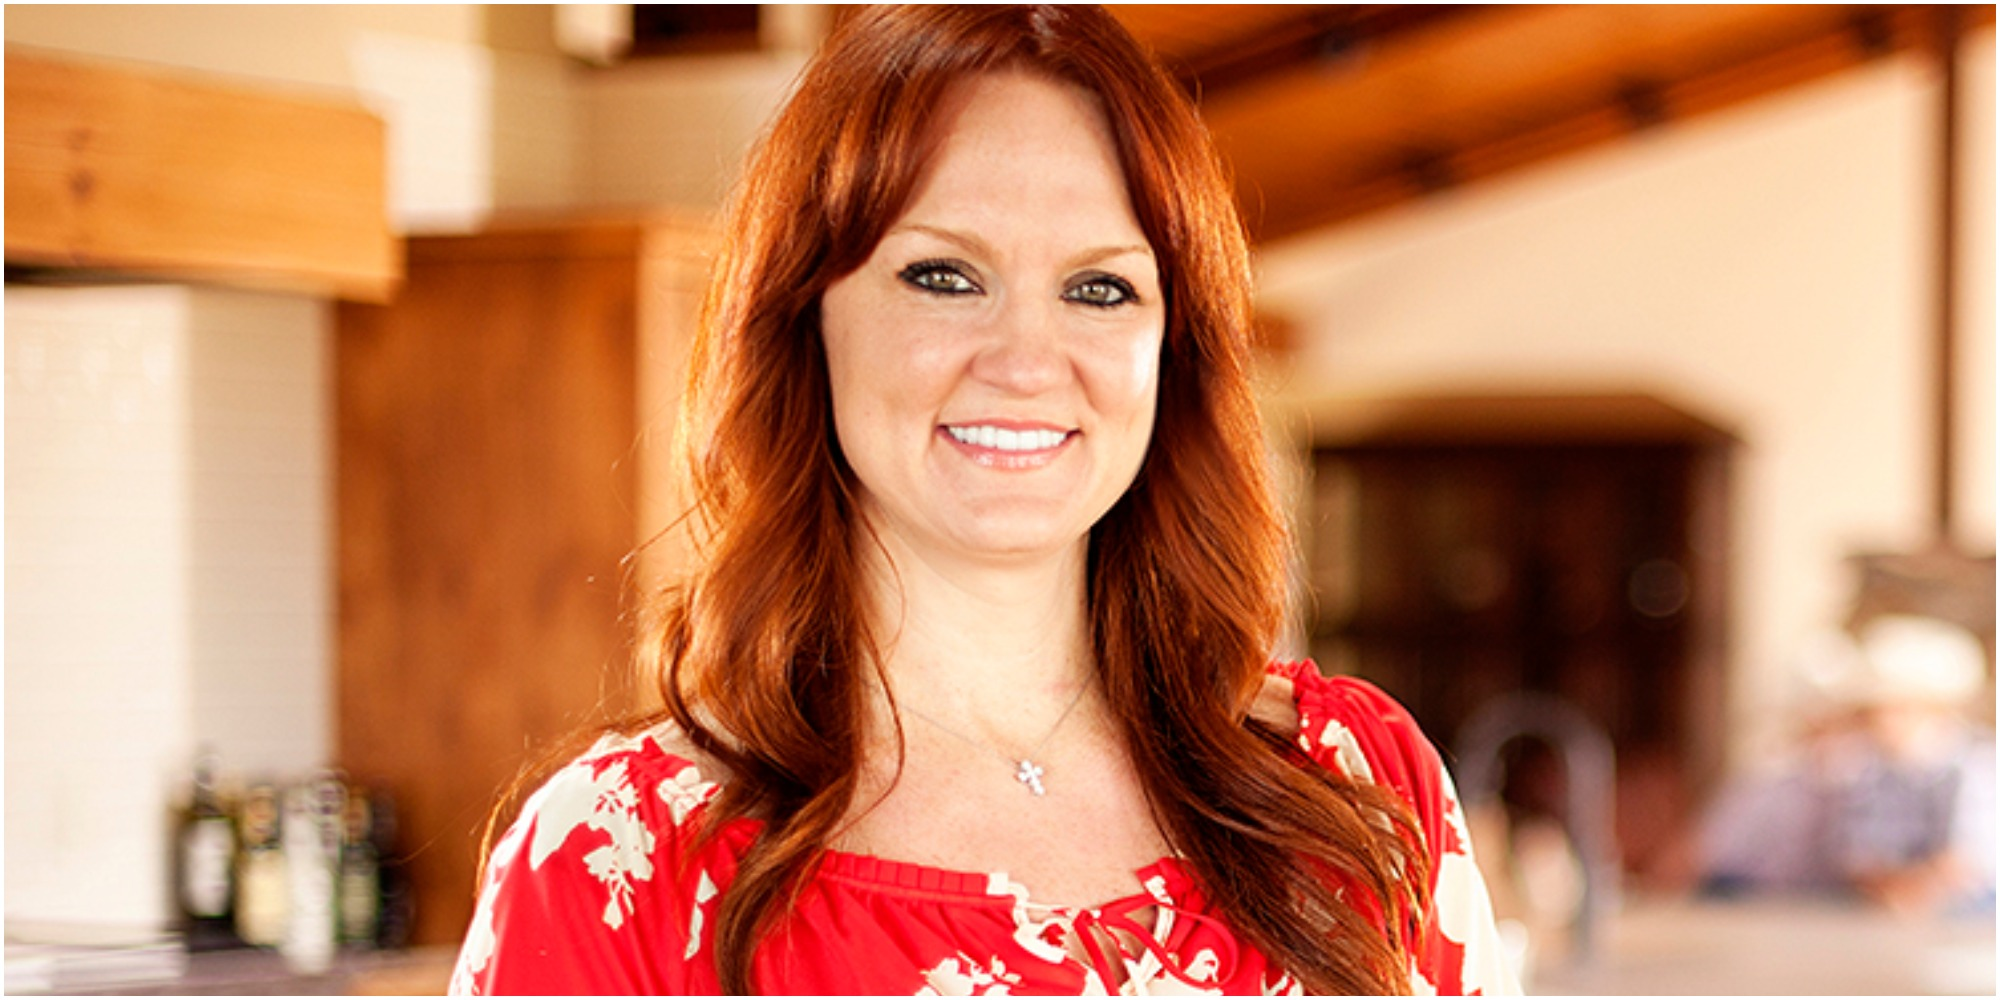 Ree Drummond smiles wearing a red shirt